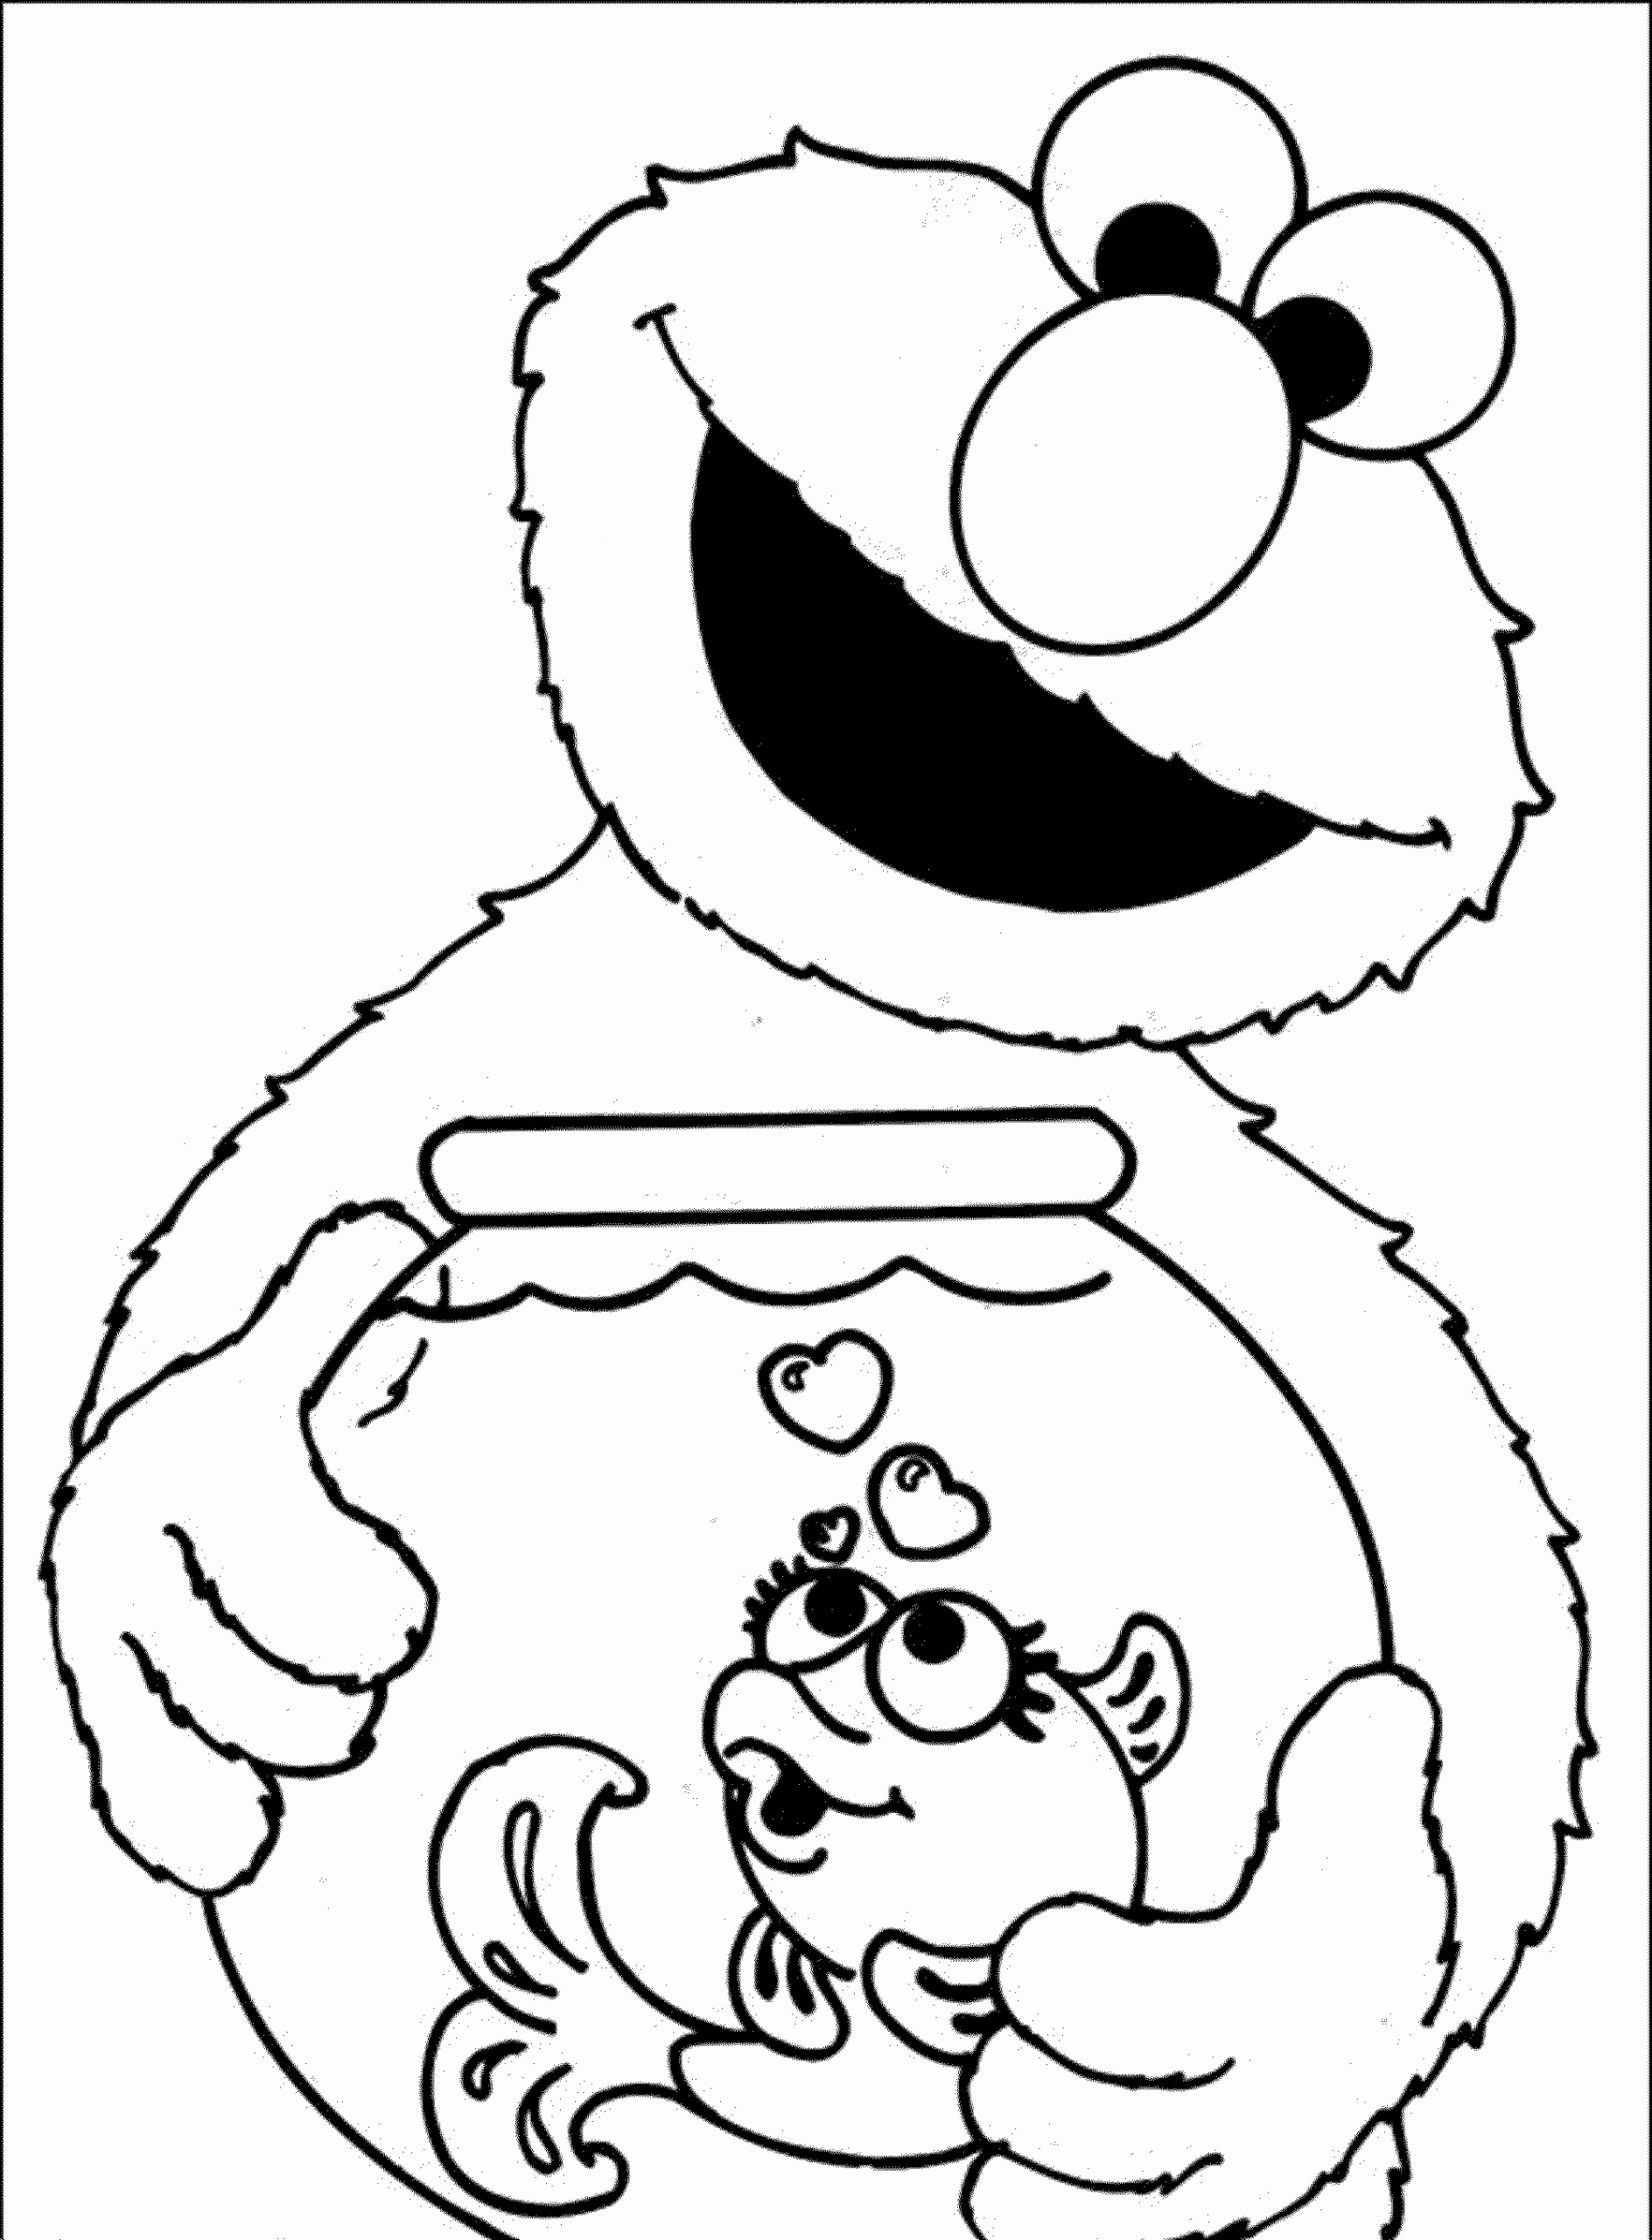 Childrens Coloring Books Fresh Elmo And Dorothy Coloring Pages Elmo Coloring Pages Sesame Street Coloring Pages Birthday Coloring Pages